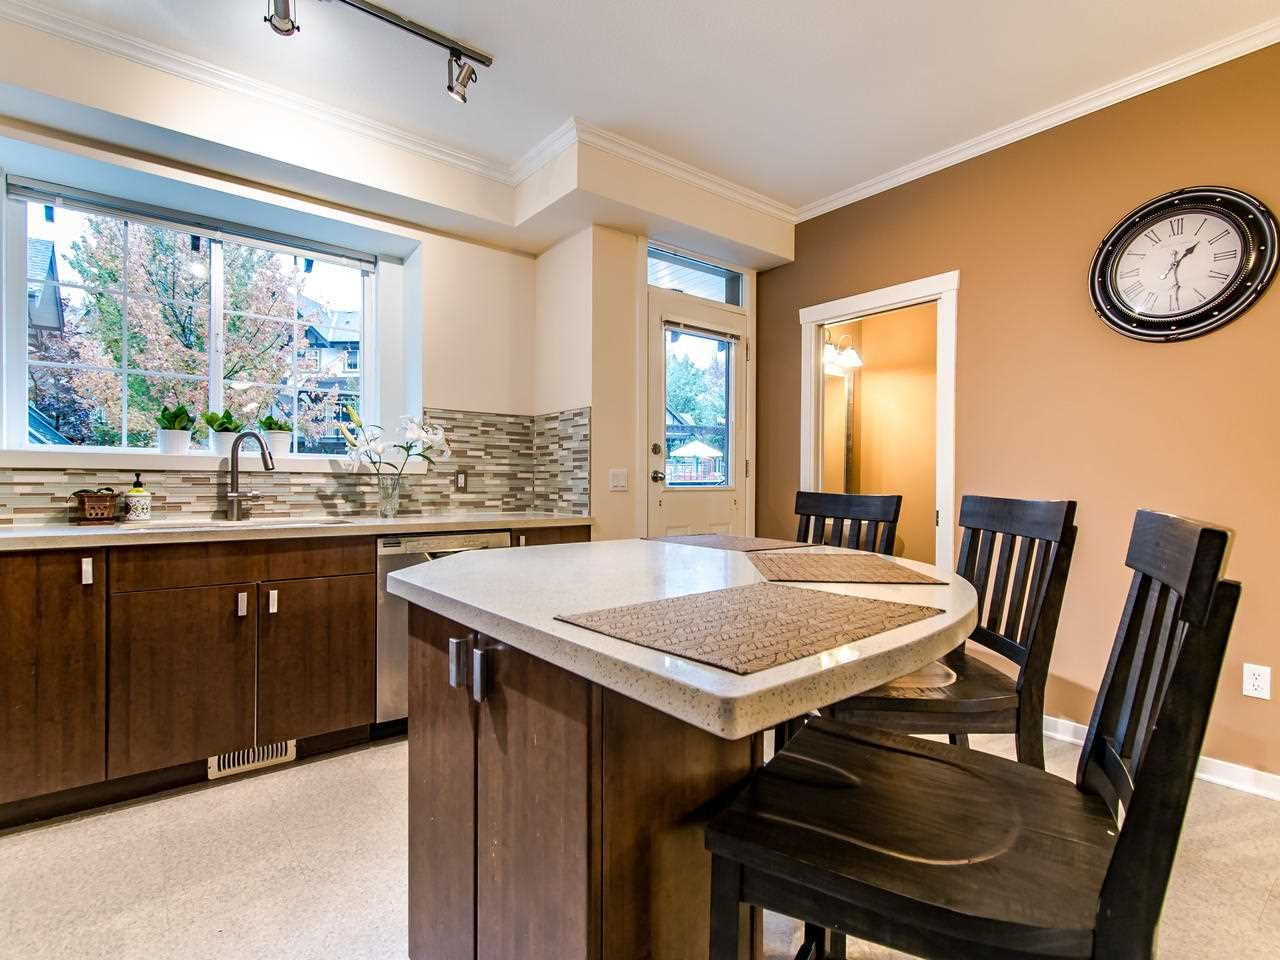 """Photo 6: Photos: 7 2200 PANORAMA Drive in Port Moody: Heritage Woods PM Townhouse for sale in """"THE QUEST"""" : MLS®# R2414883"""